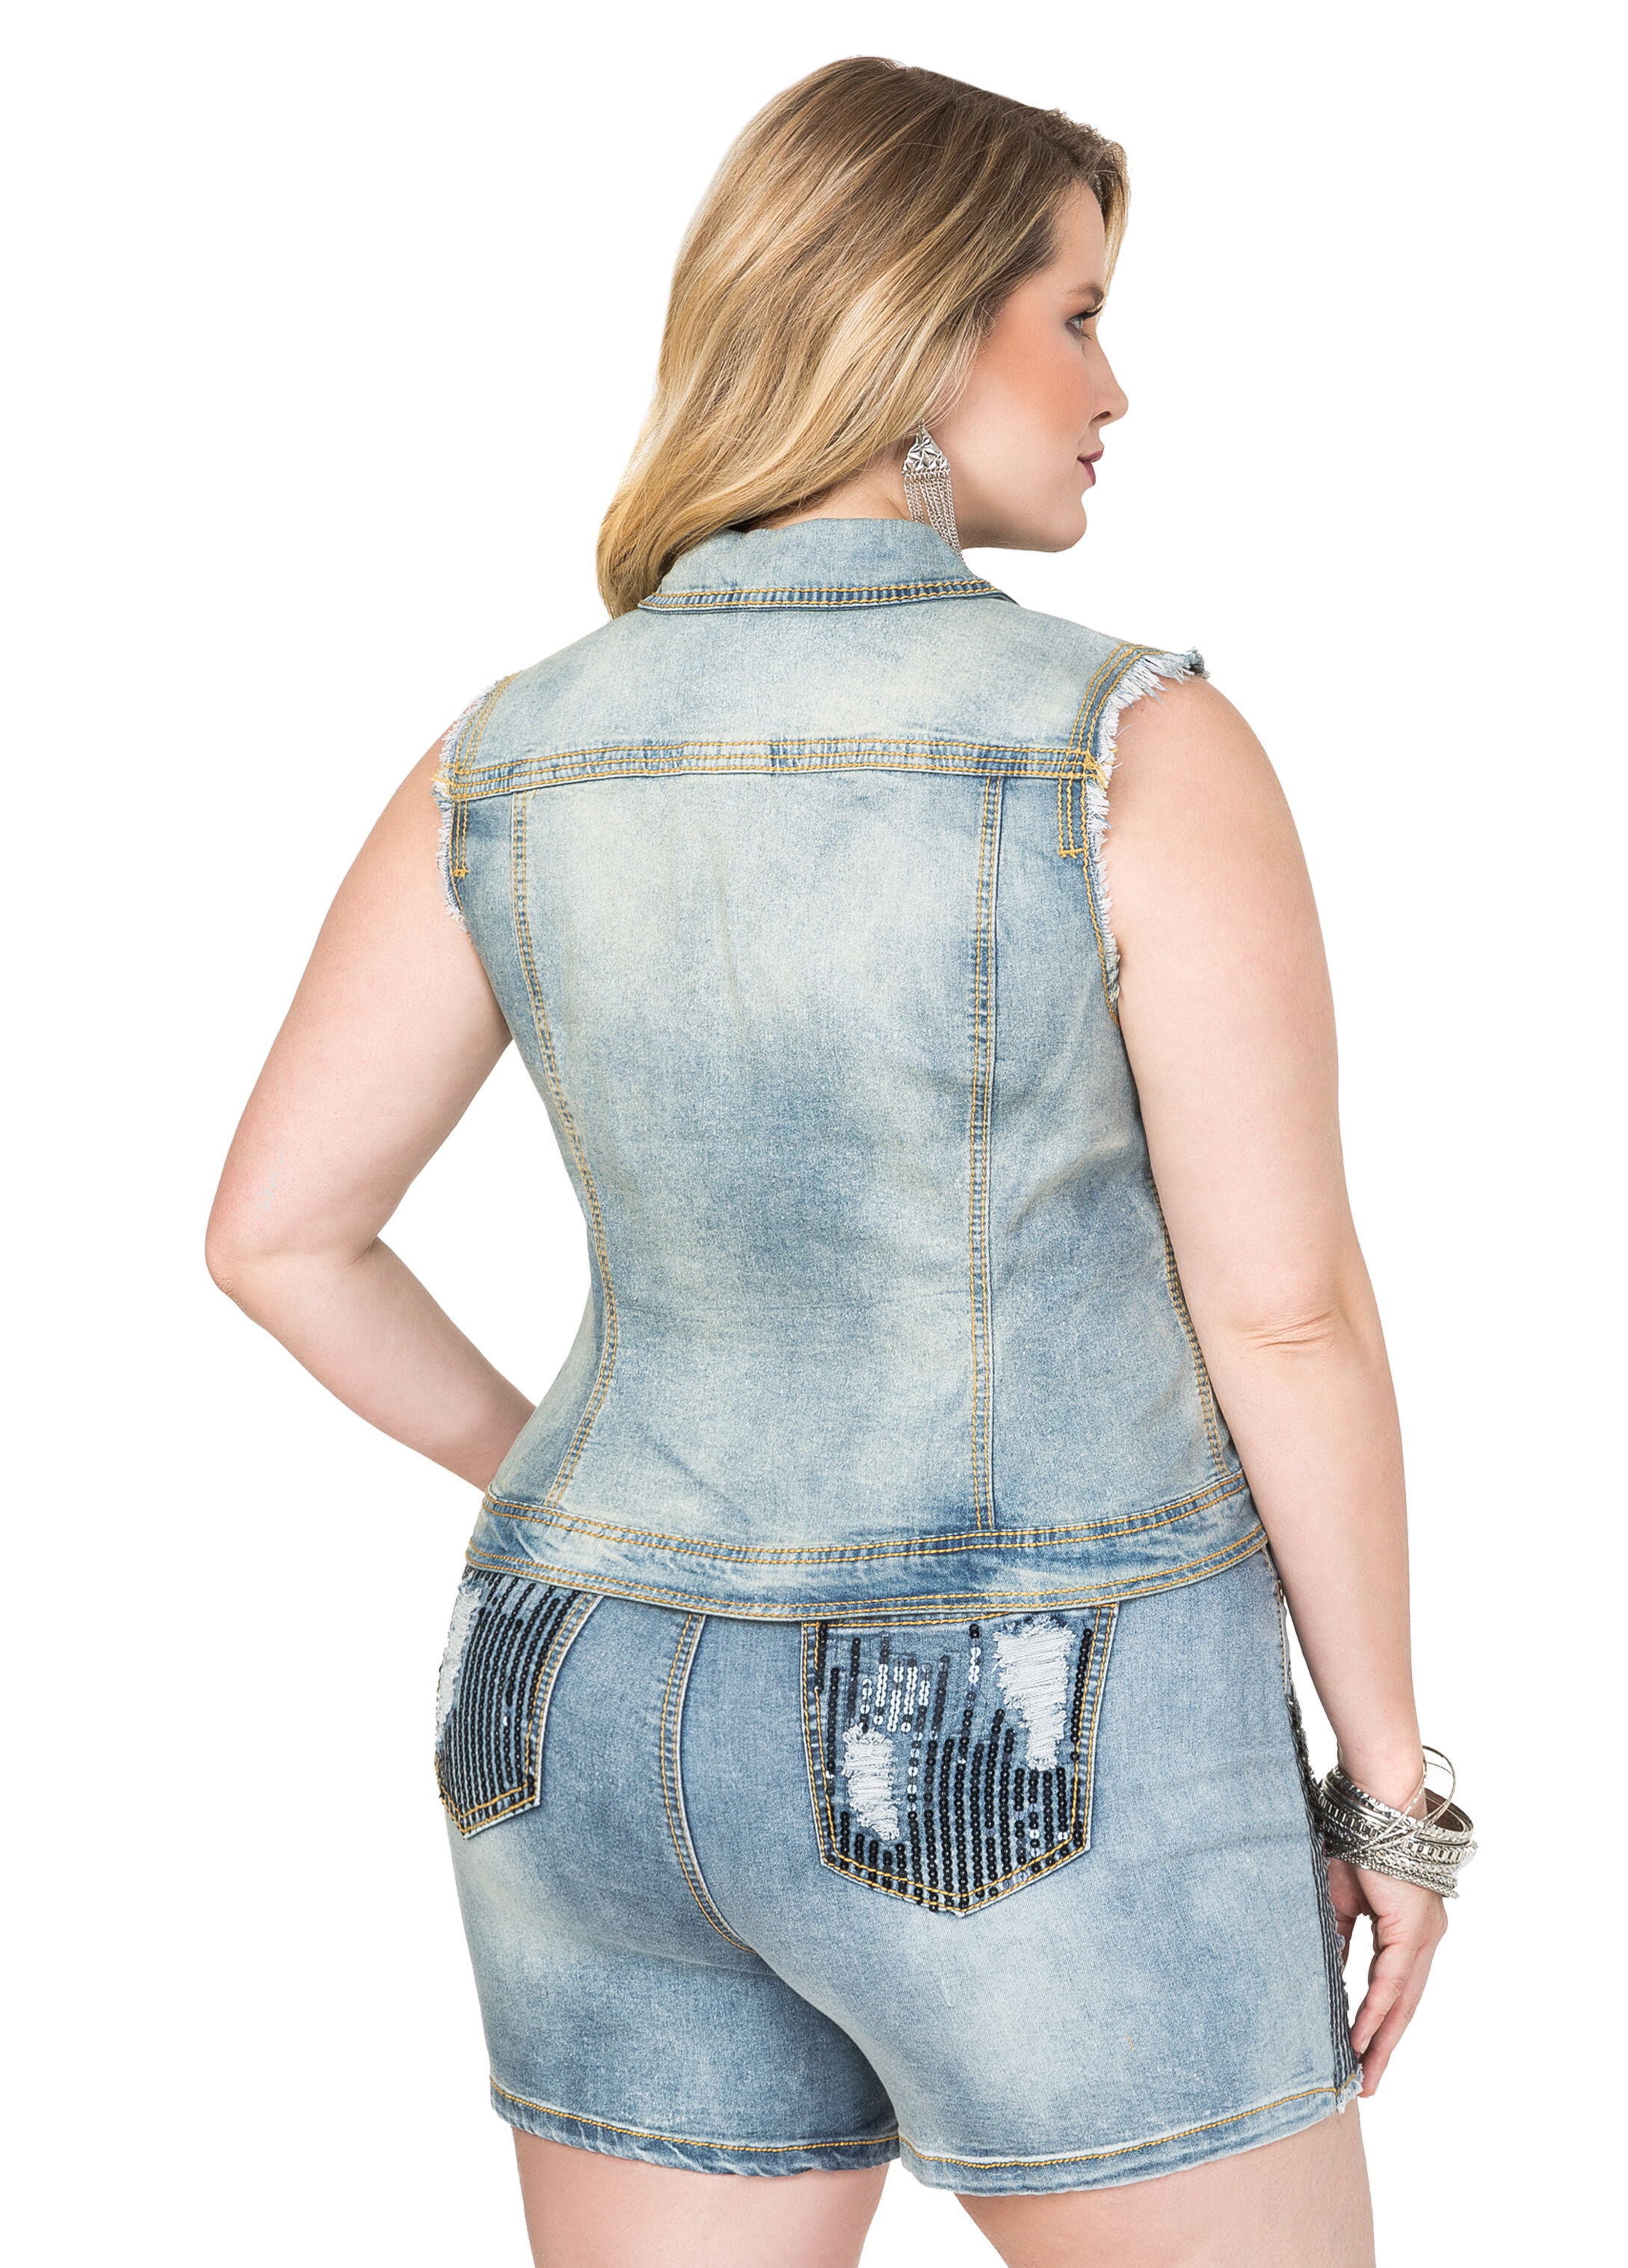 Destructed Sequin Jean Vest